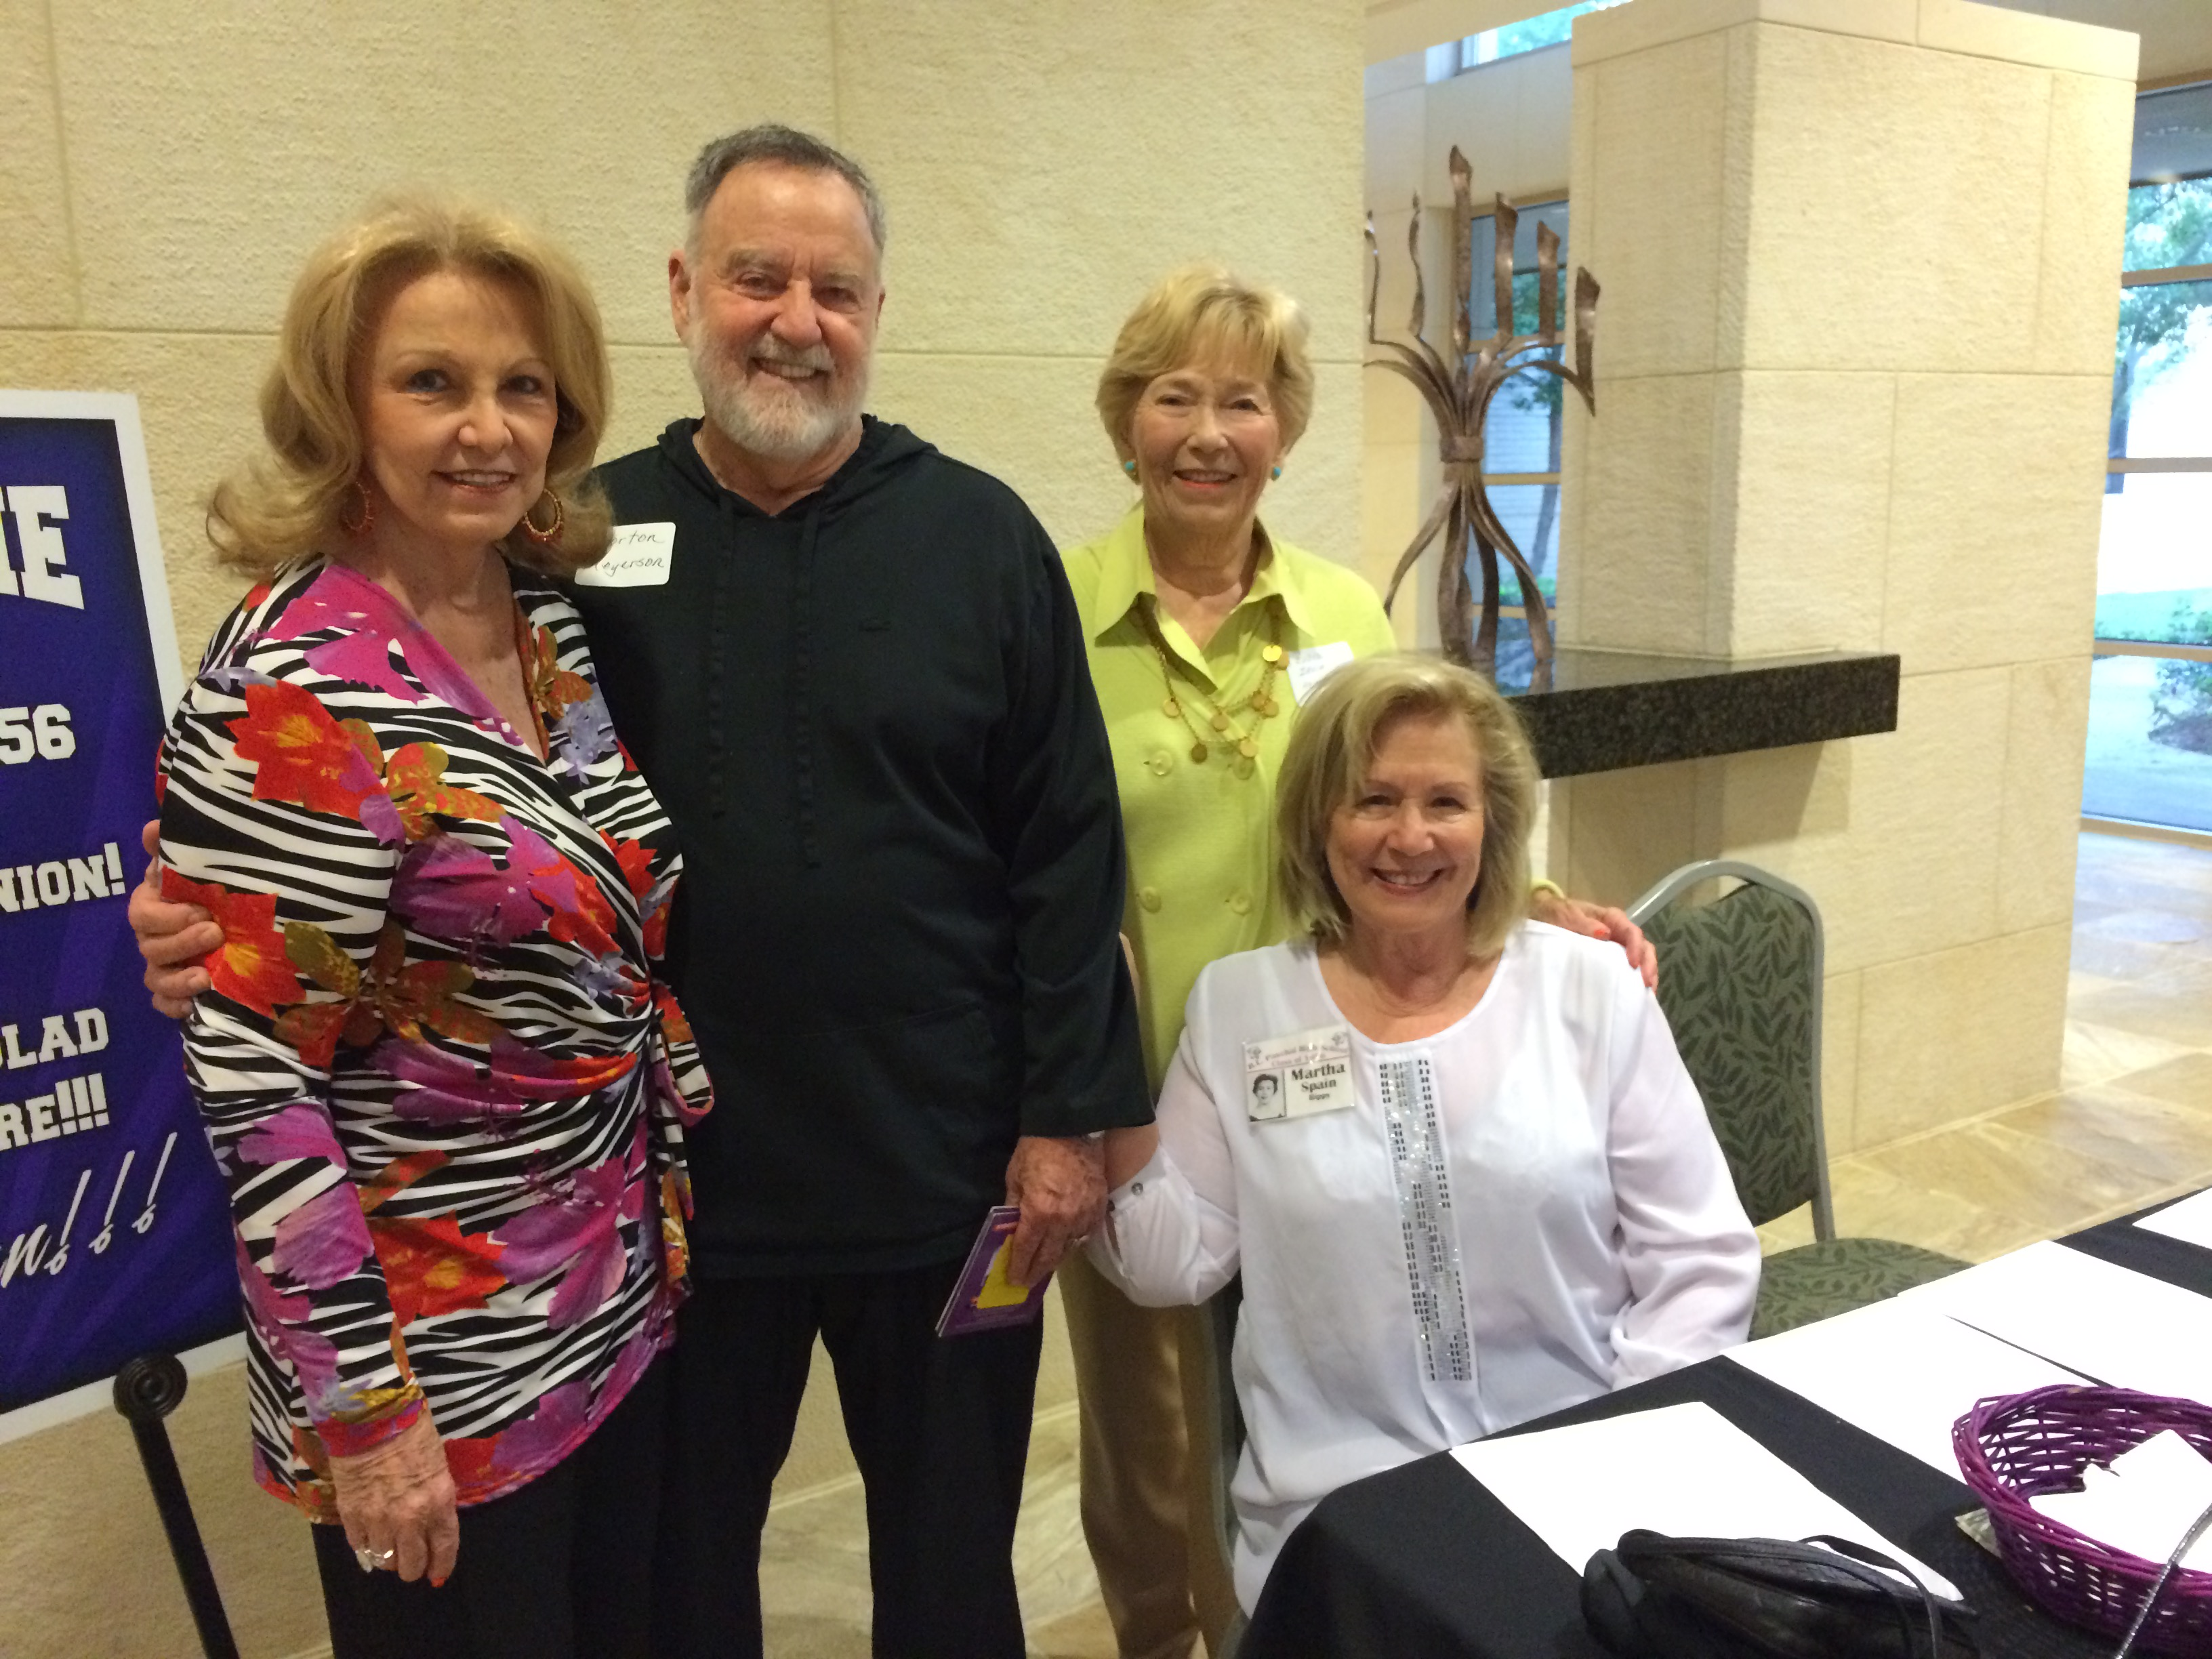 Wanda Cunningham Walker, Morton Meyerson, Ludie Irvin Heineman, Martha Spain Rippy (seated)